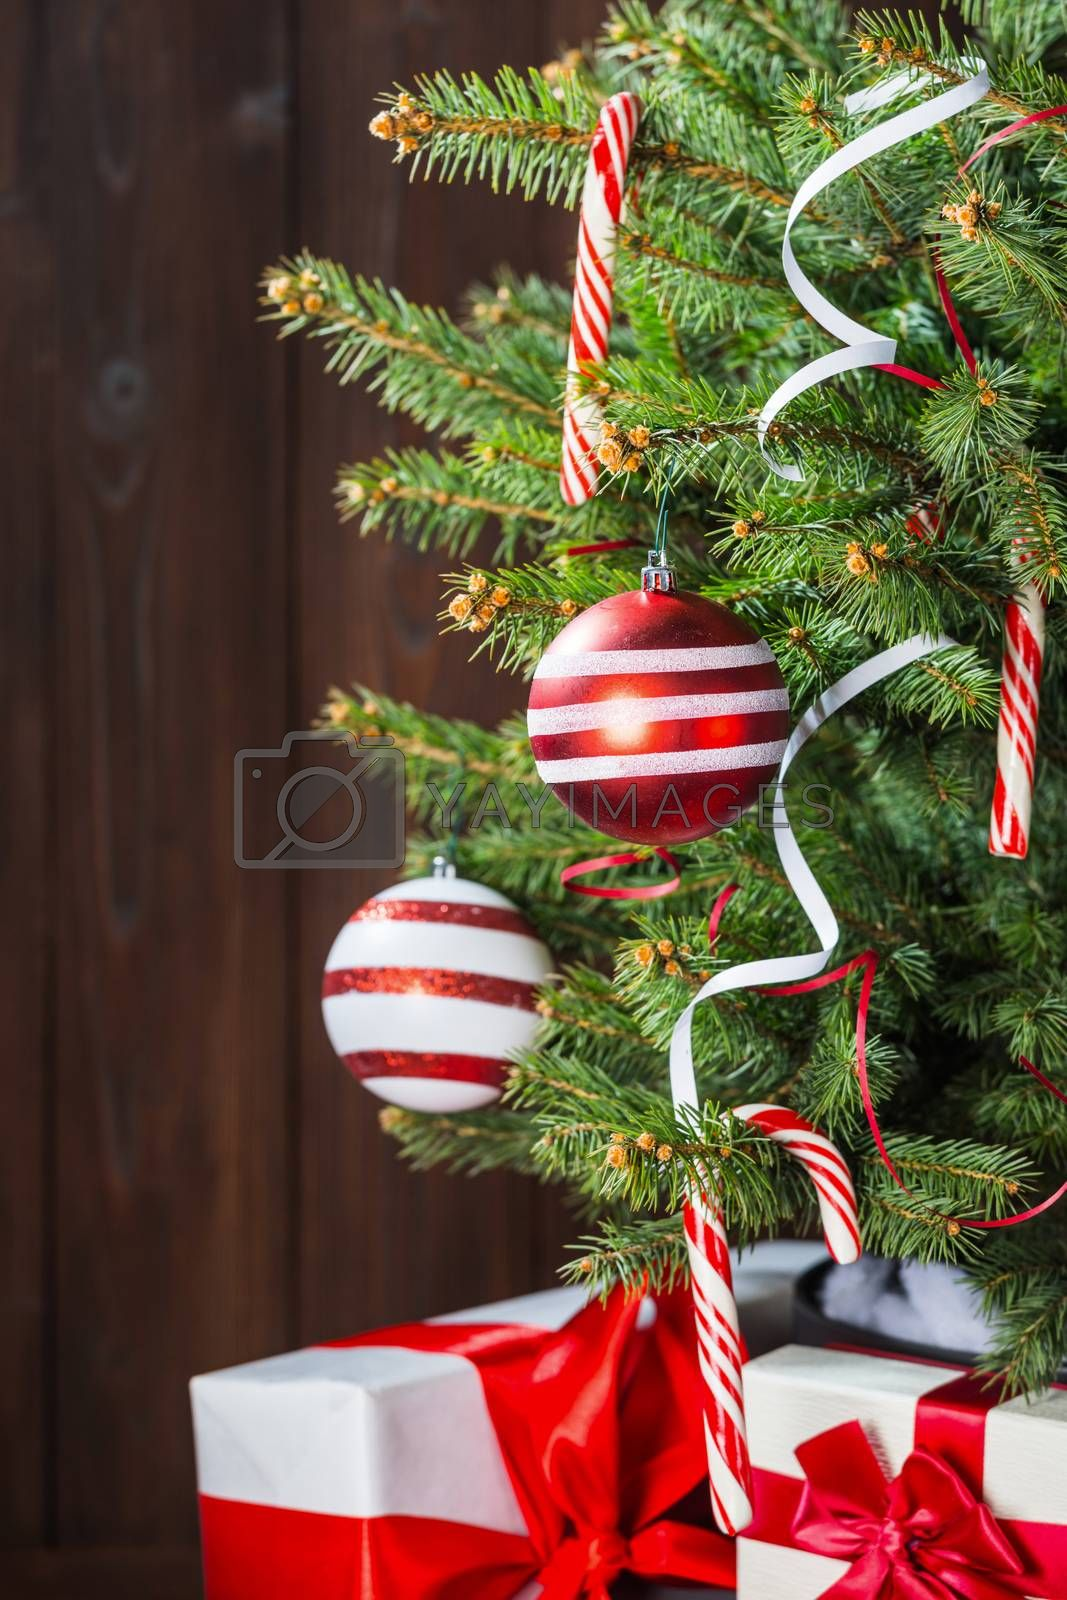 Decorated Christmas tree and gift boxes background